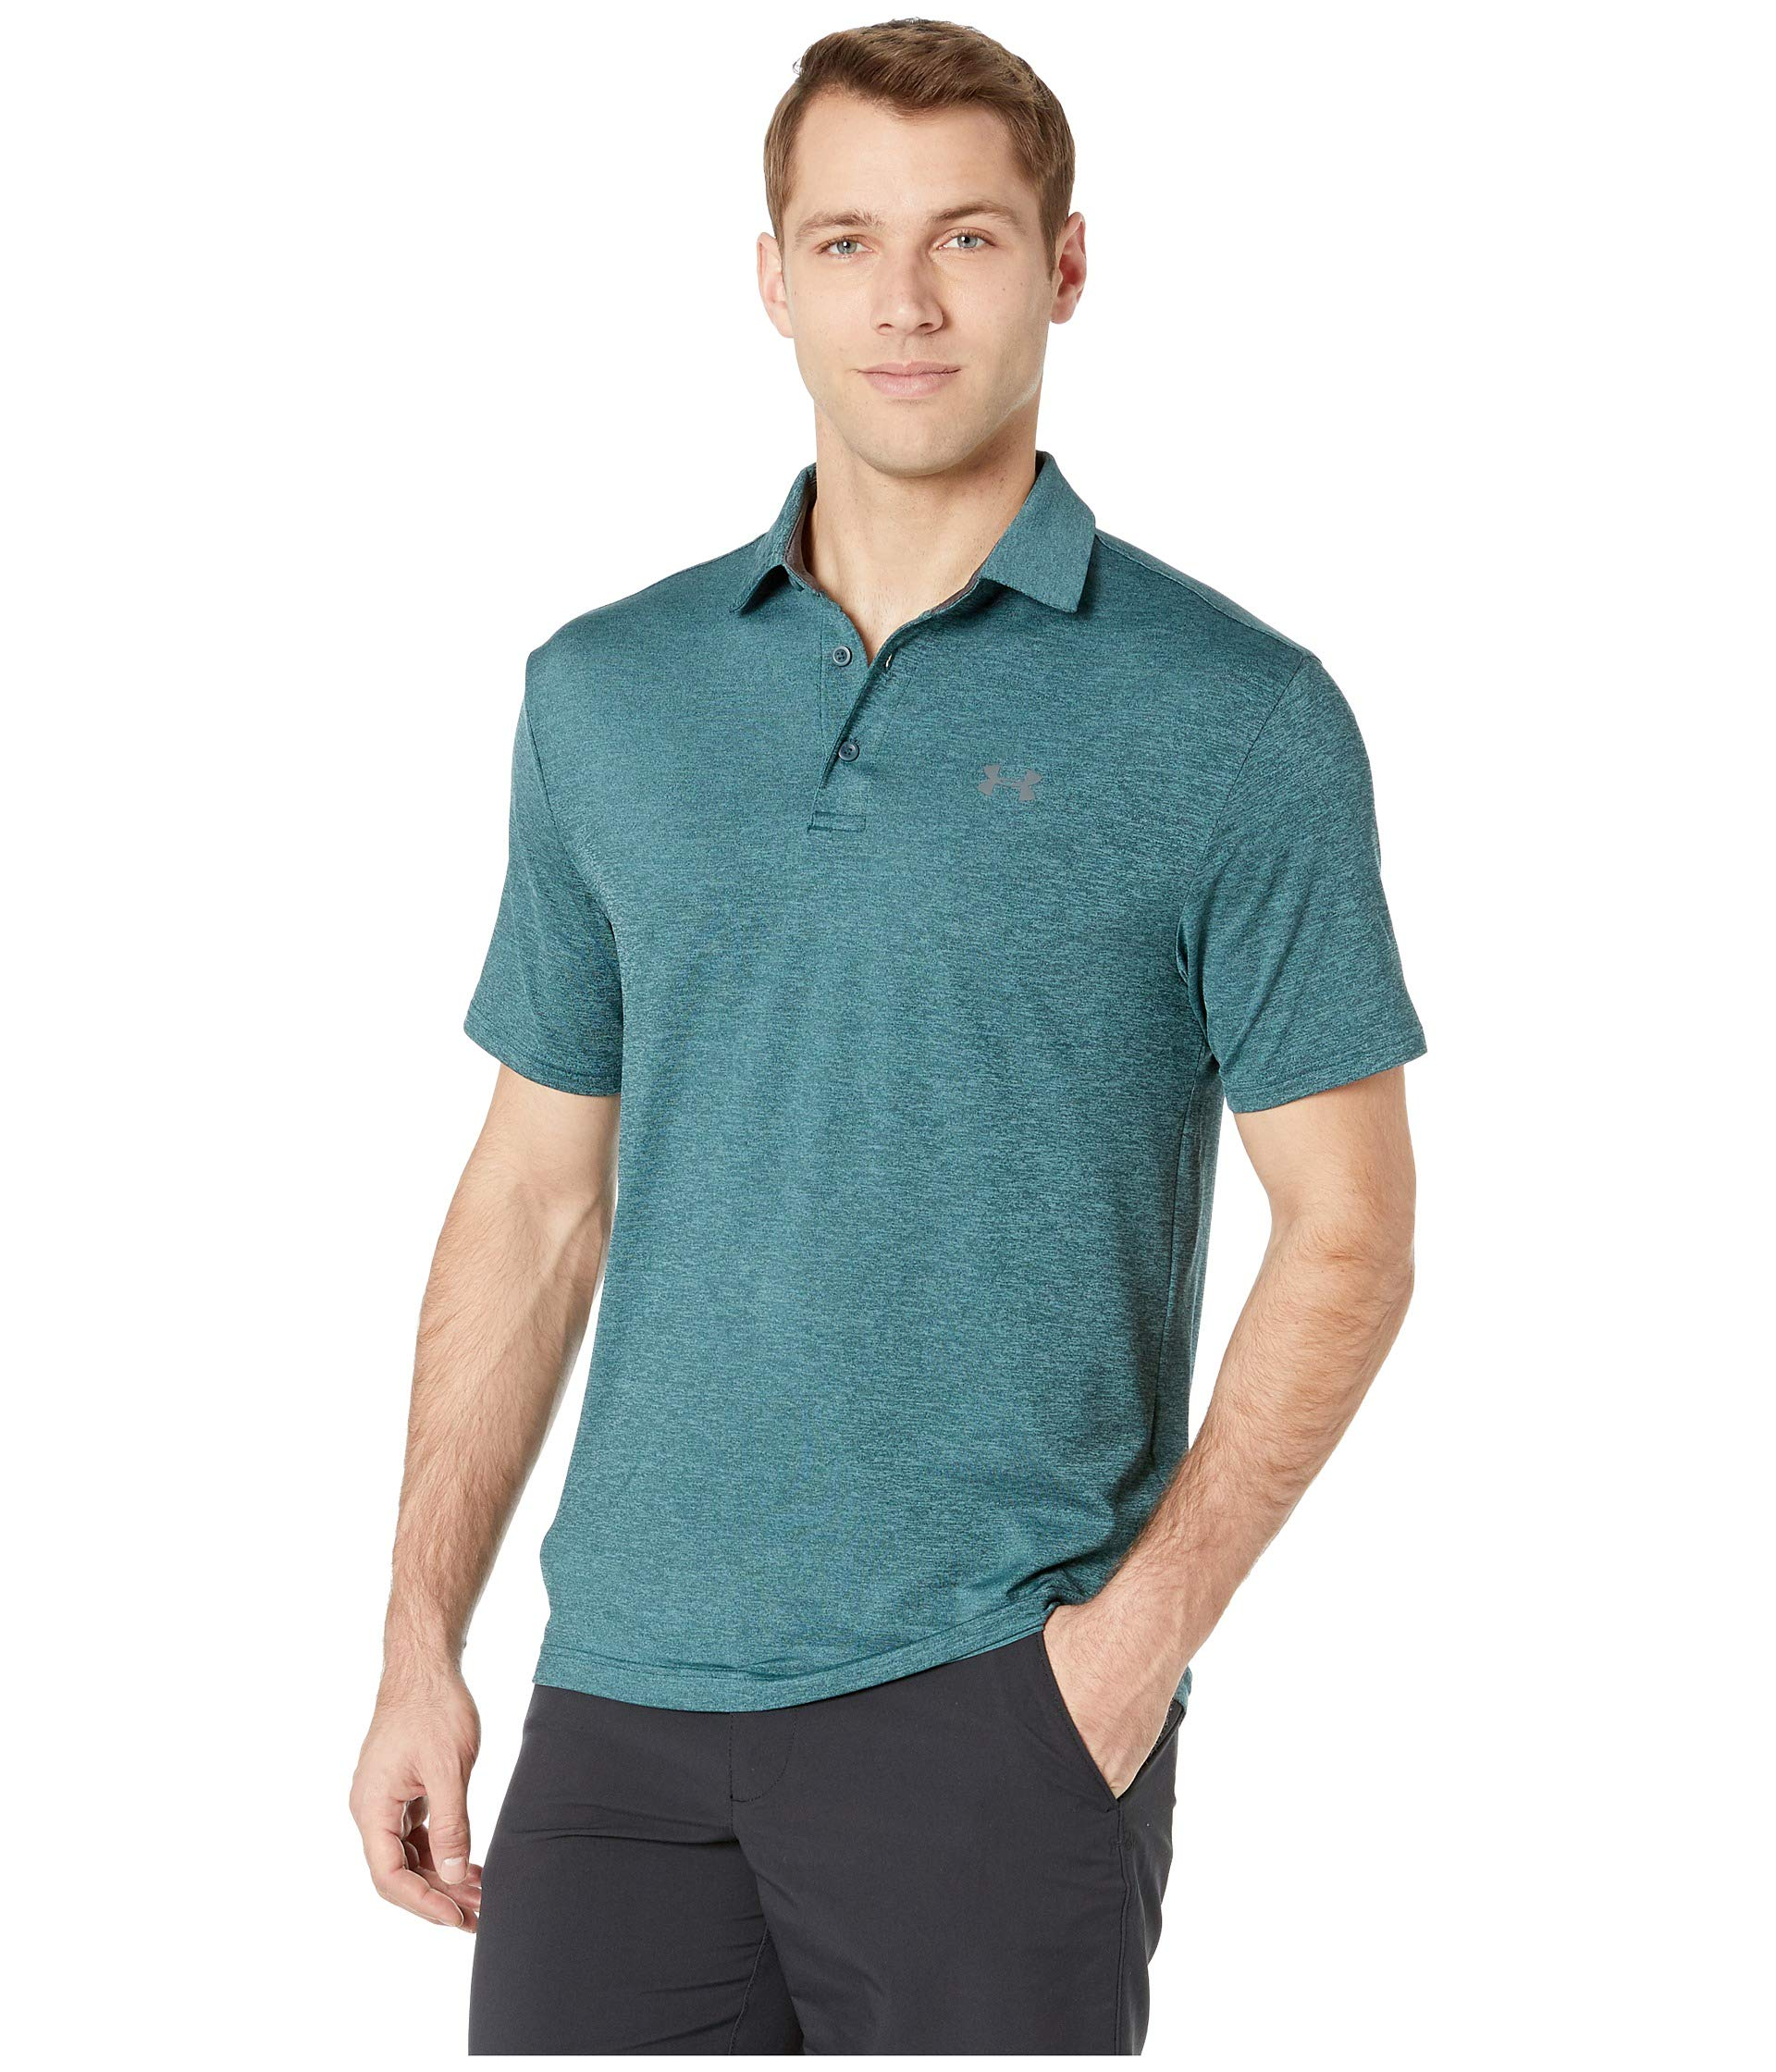 Under Armour Golf Men's Playoff Polo 2.0 Batik/Dust/Pitch Gray XXX-Large